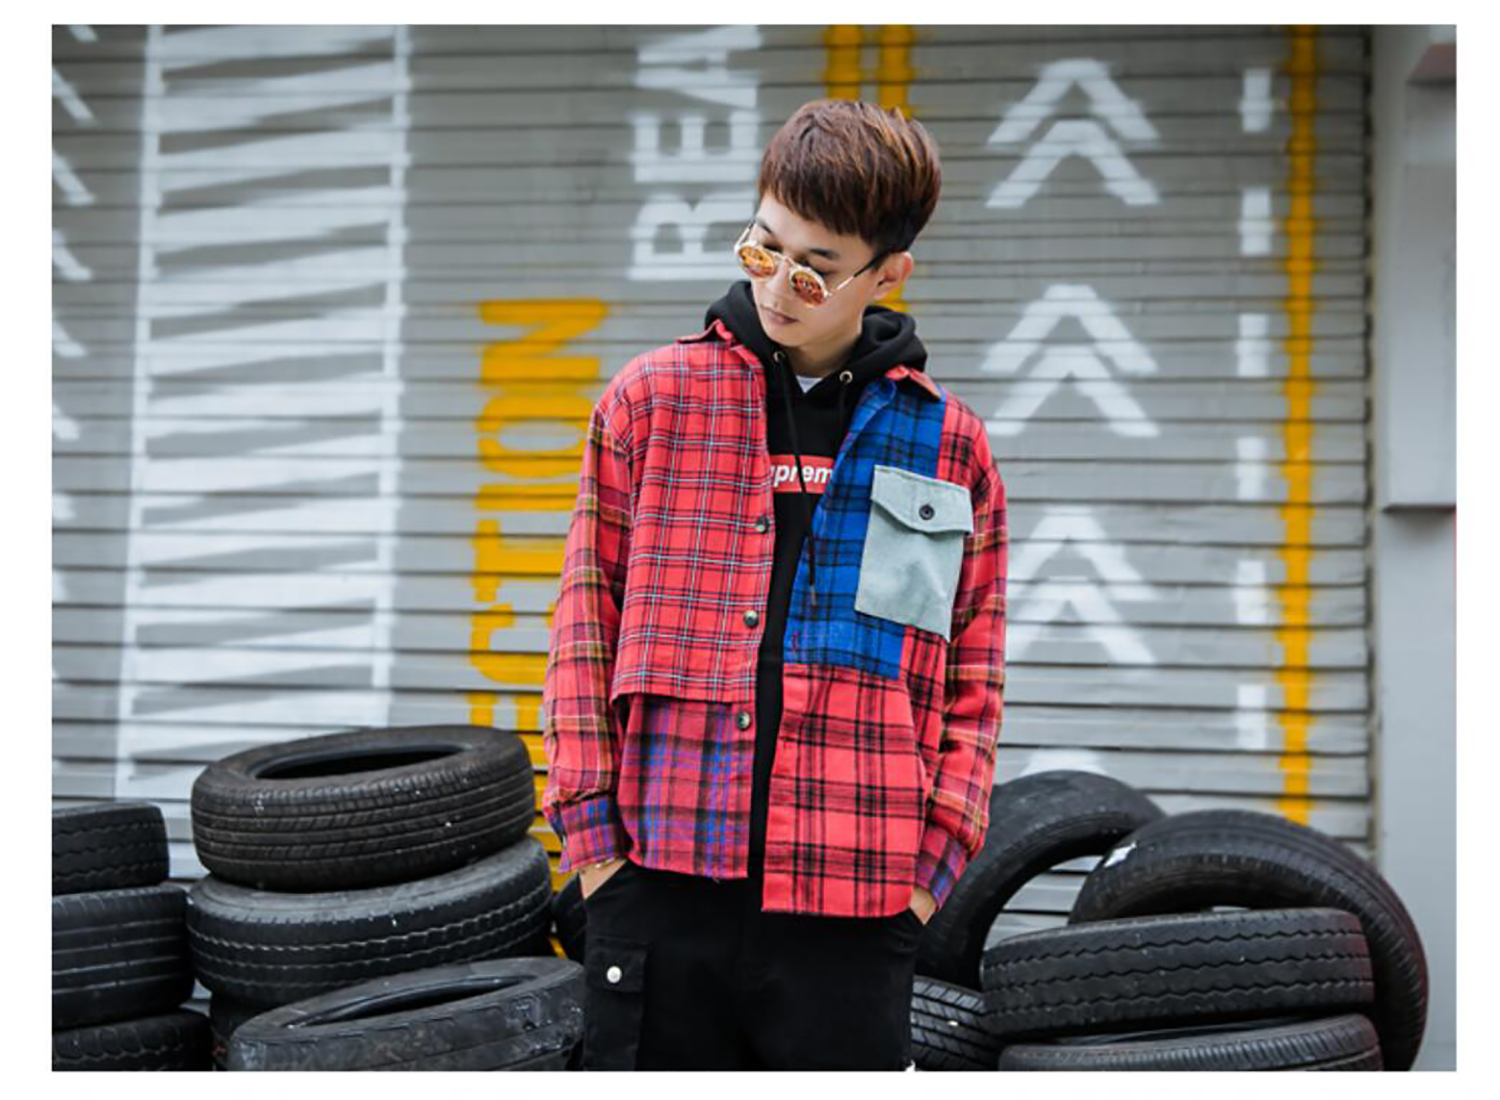 Men's Plaid Shirt Long Sleeve Shirts Streetwear Tops Hip Hop Personality Fashion For Youths Adolescents Boys Spring Autumn